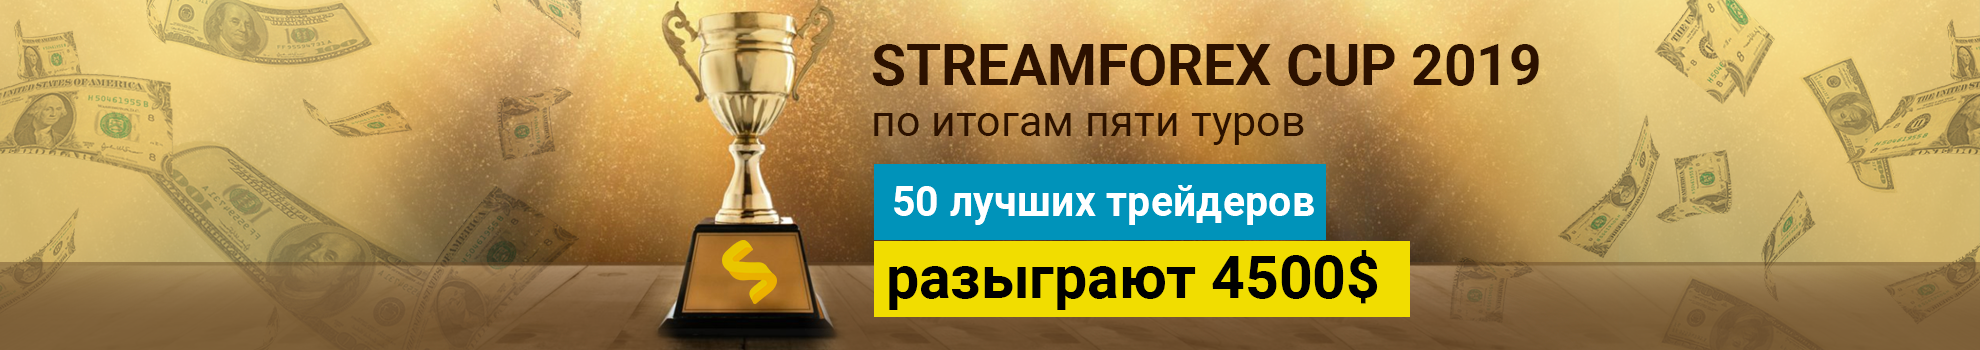 Streamforex Contest: Cup 2019